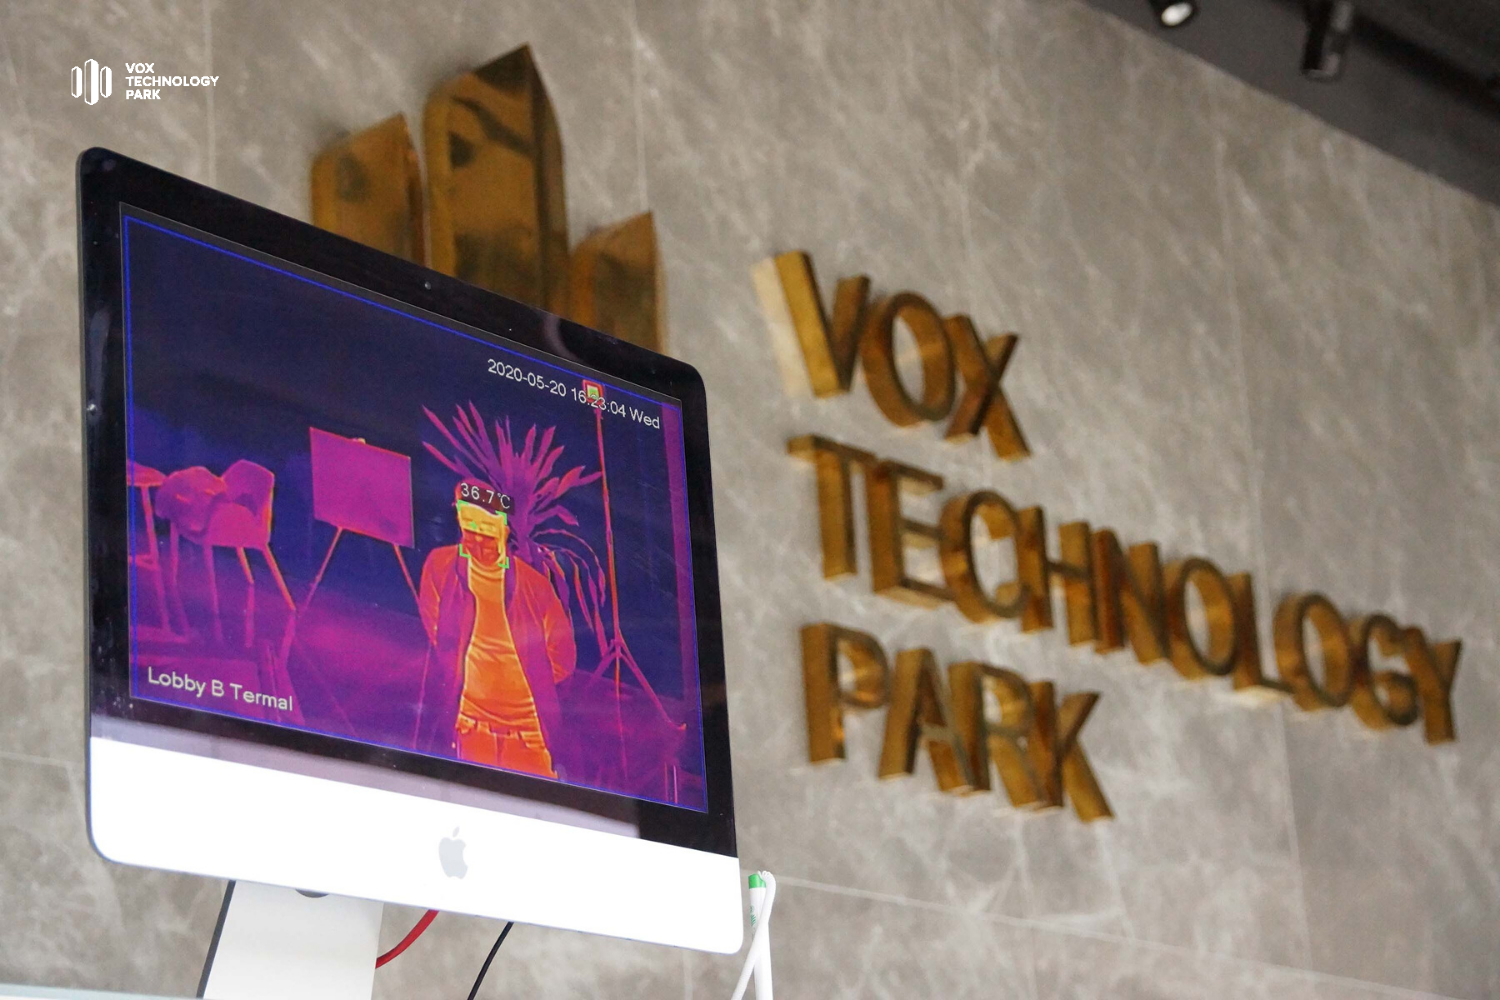 Returning to the office: Measures implemented by Vox Technology Park